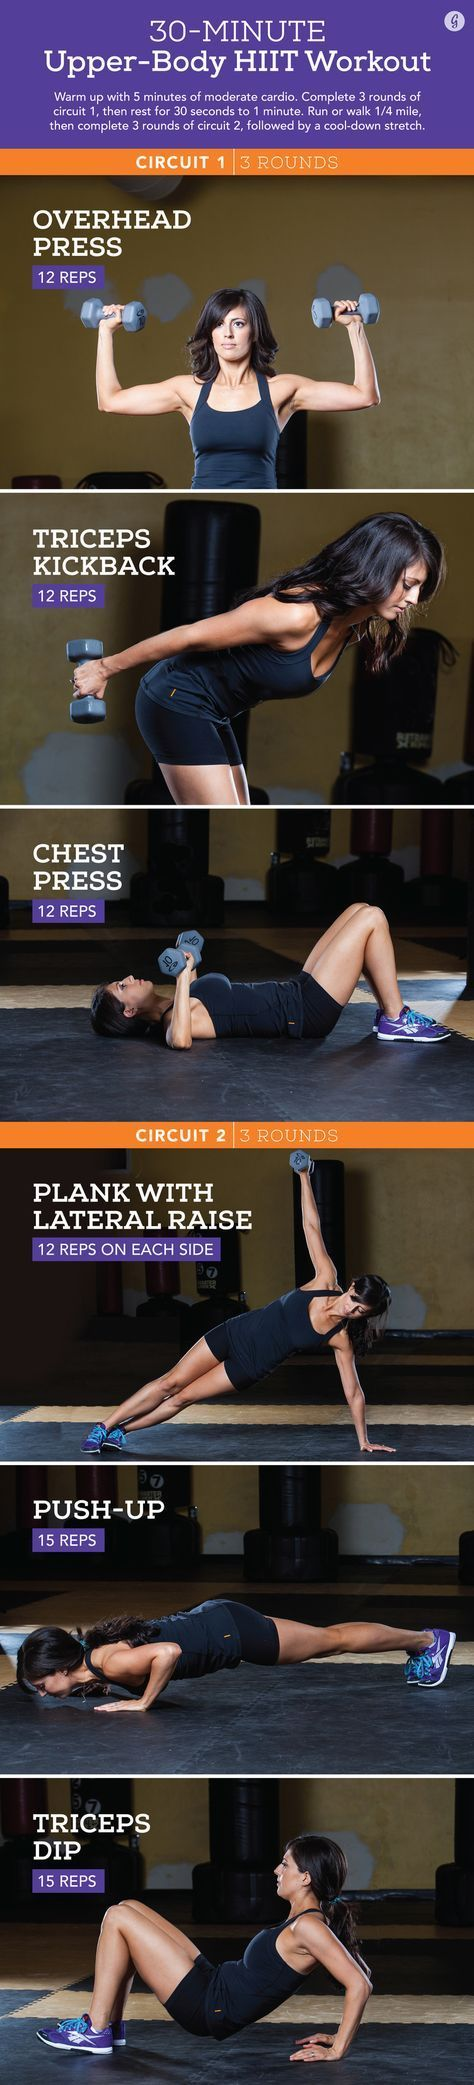 The Quick and Dirty Upper-Body Workout